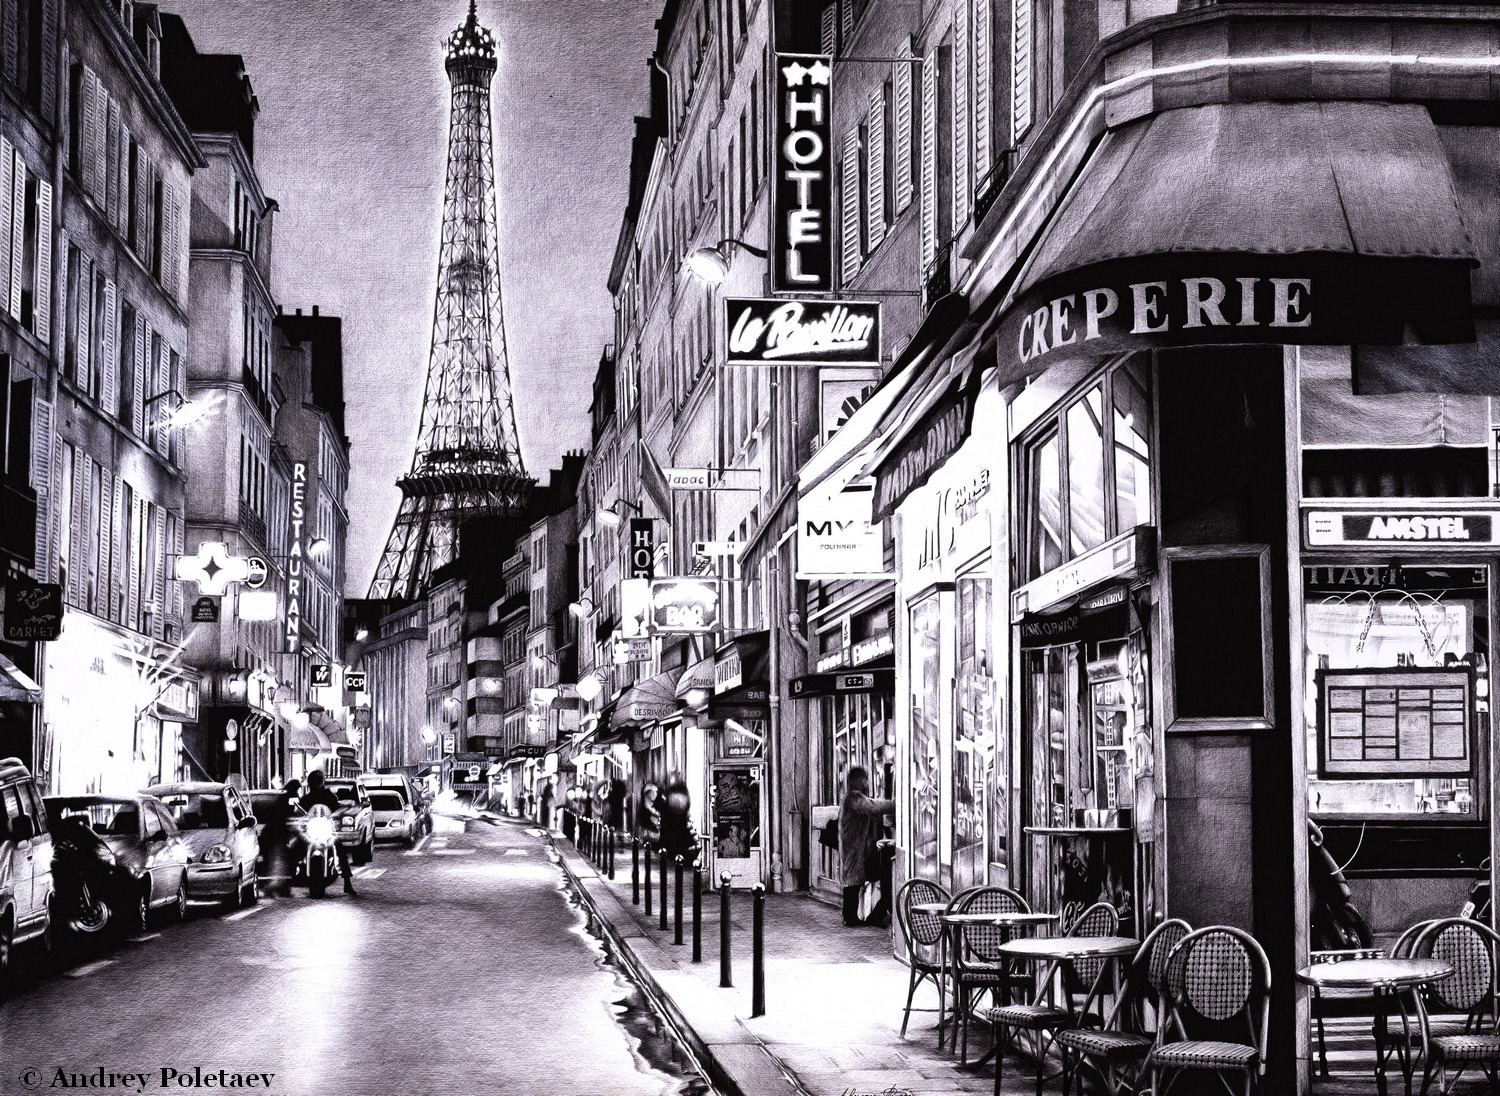 EVENING IN PARIS - Ballpoint Pen - Andrey Poletaev Art